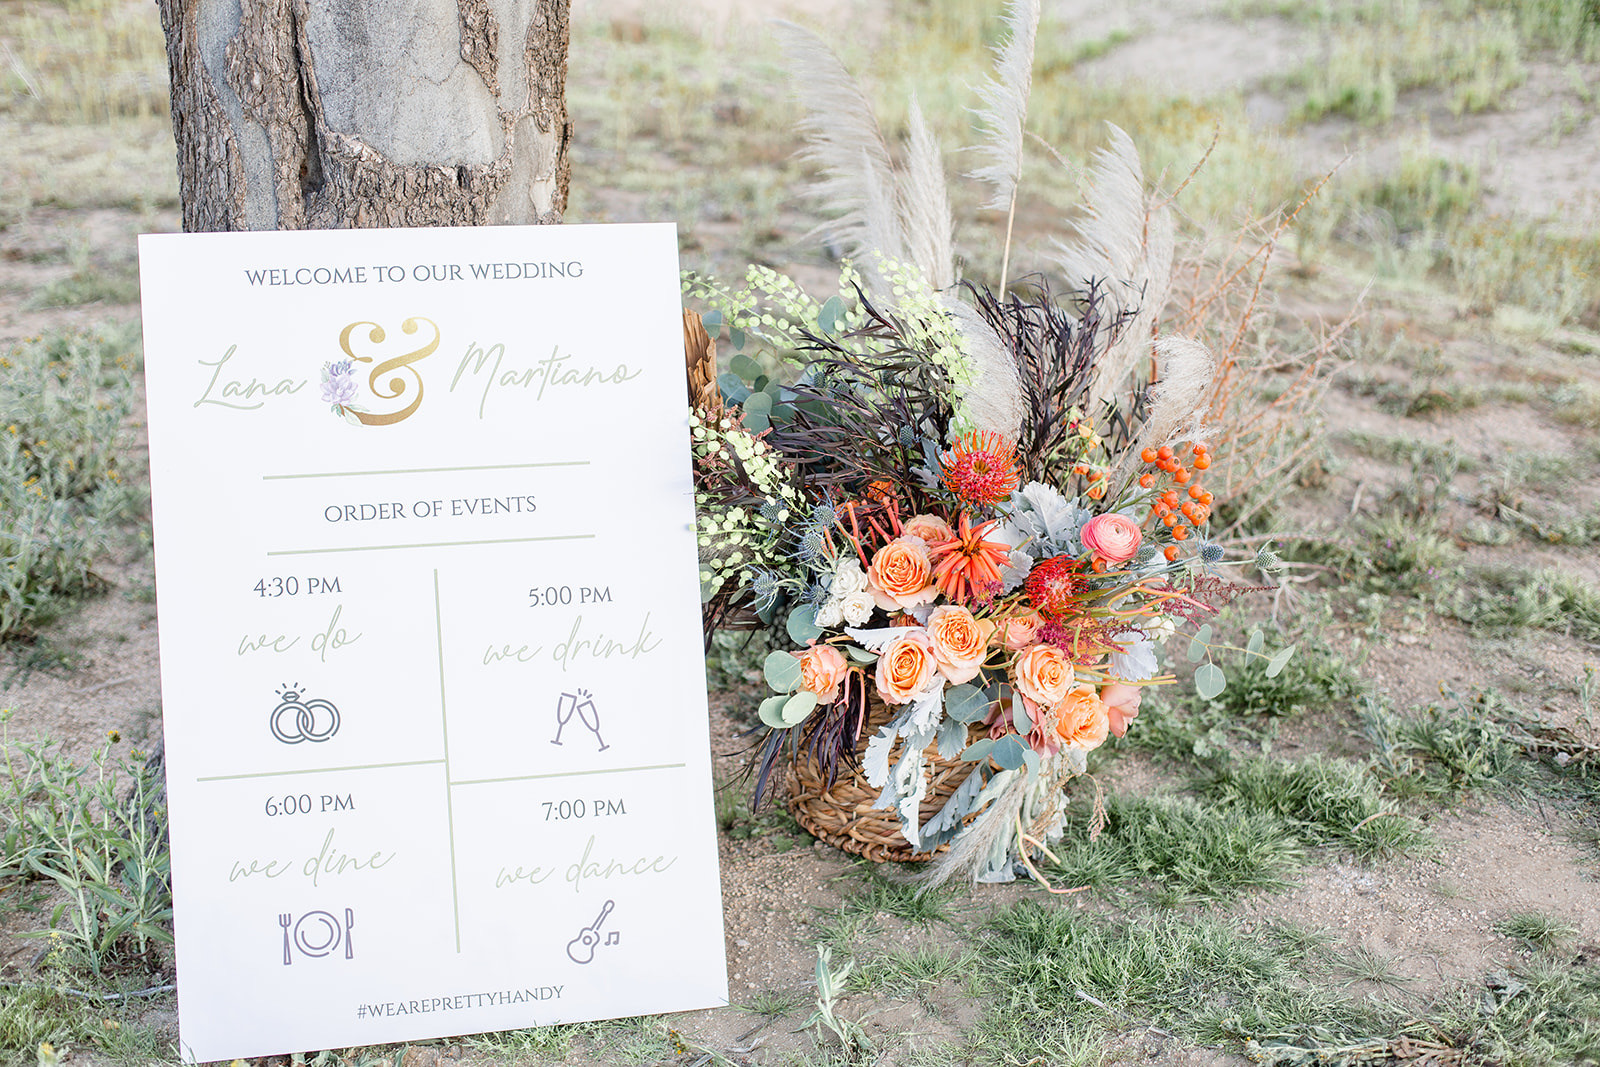 Wedding welcome sign with a large welcome arrangement designed by Fireweed.